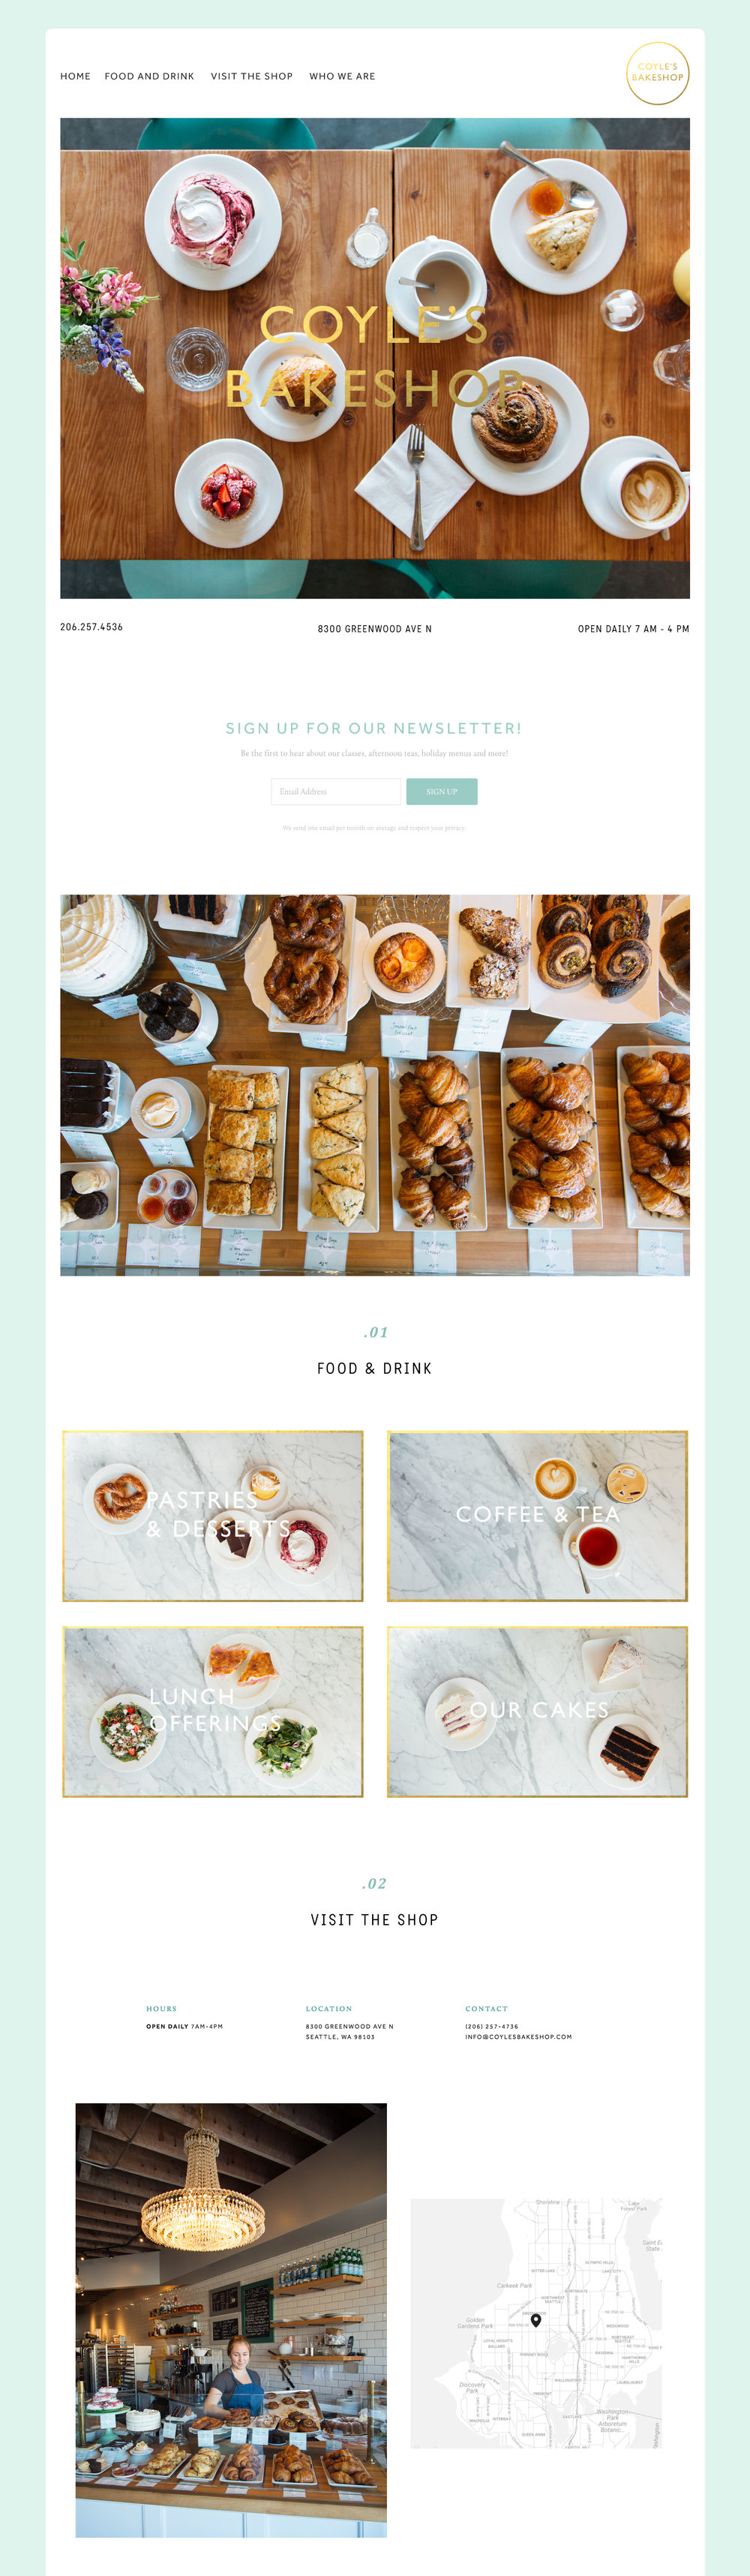 Coyle's-Bakeshop-Home-Page-1.jpg